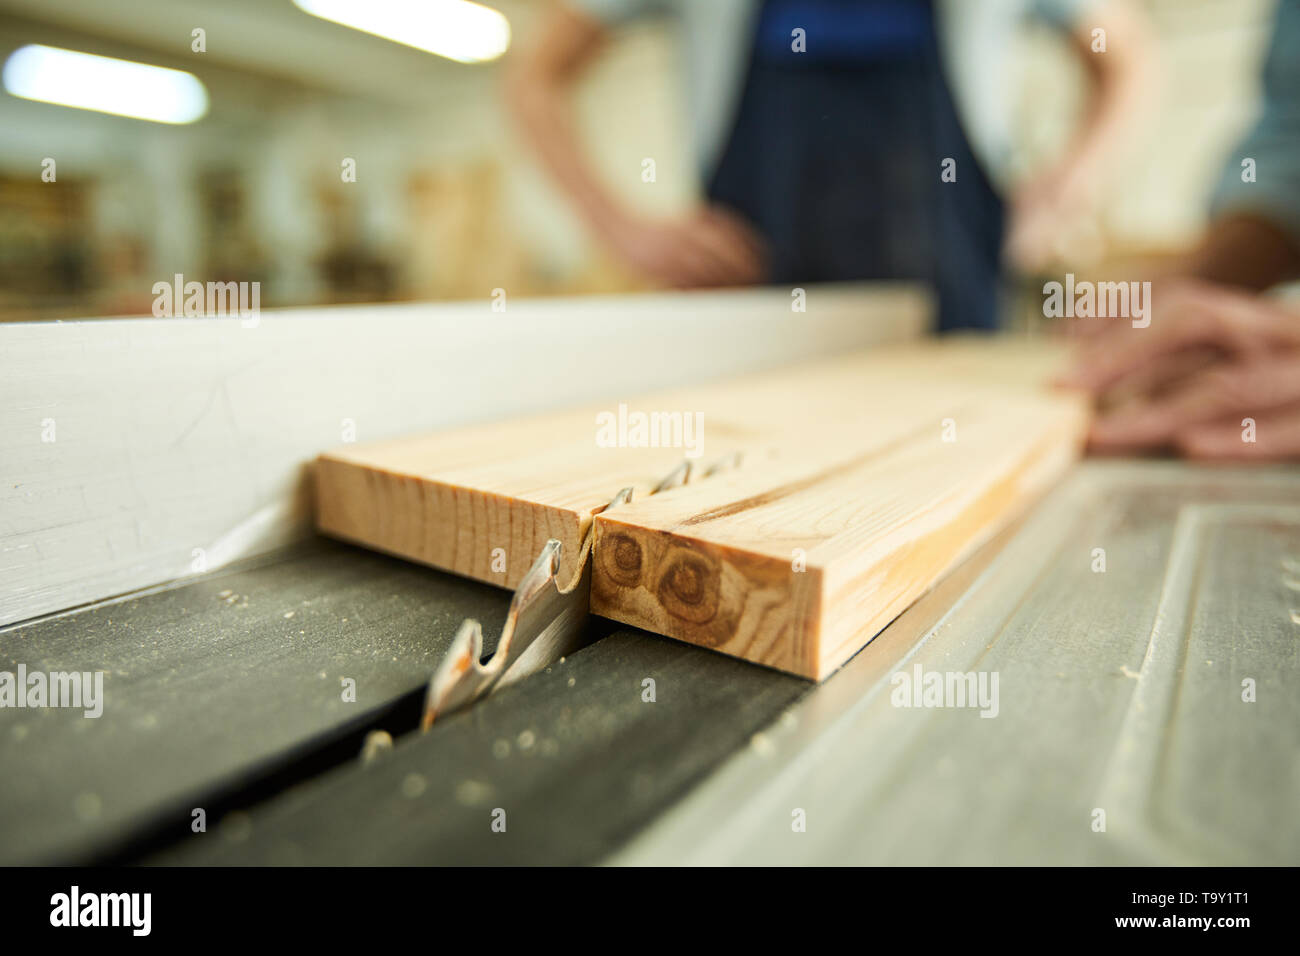 Closeup of unrecognizable carpenter cutting wood using disksaw in joinery workshop, copy space - Stock Image